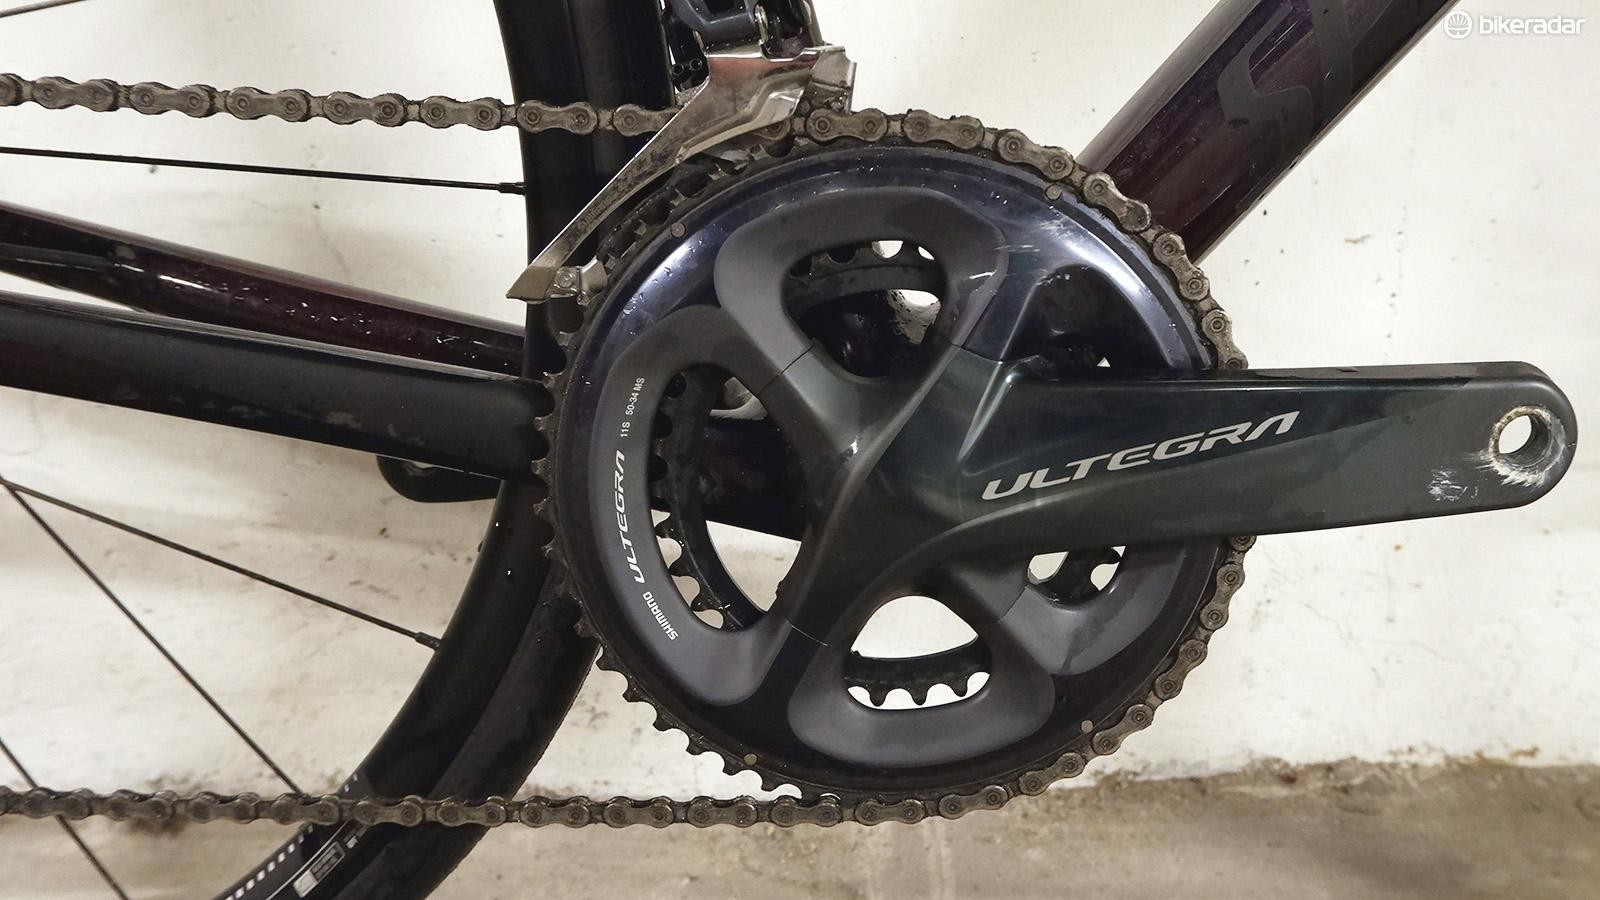 A full Ultegra groupset provides great-feeling and reliable shifting